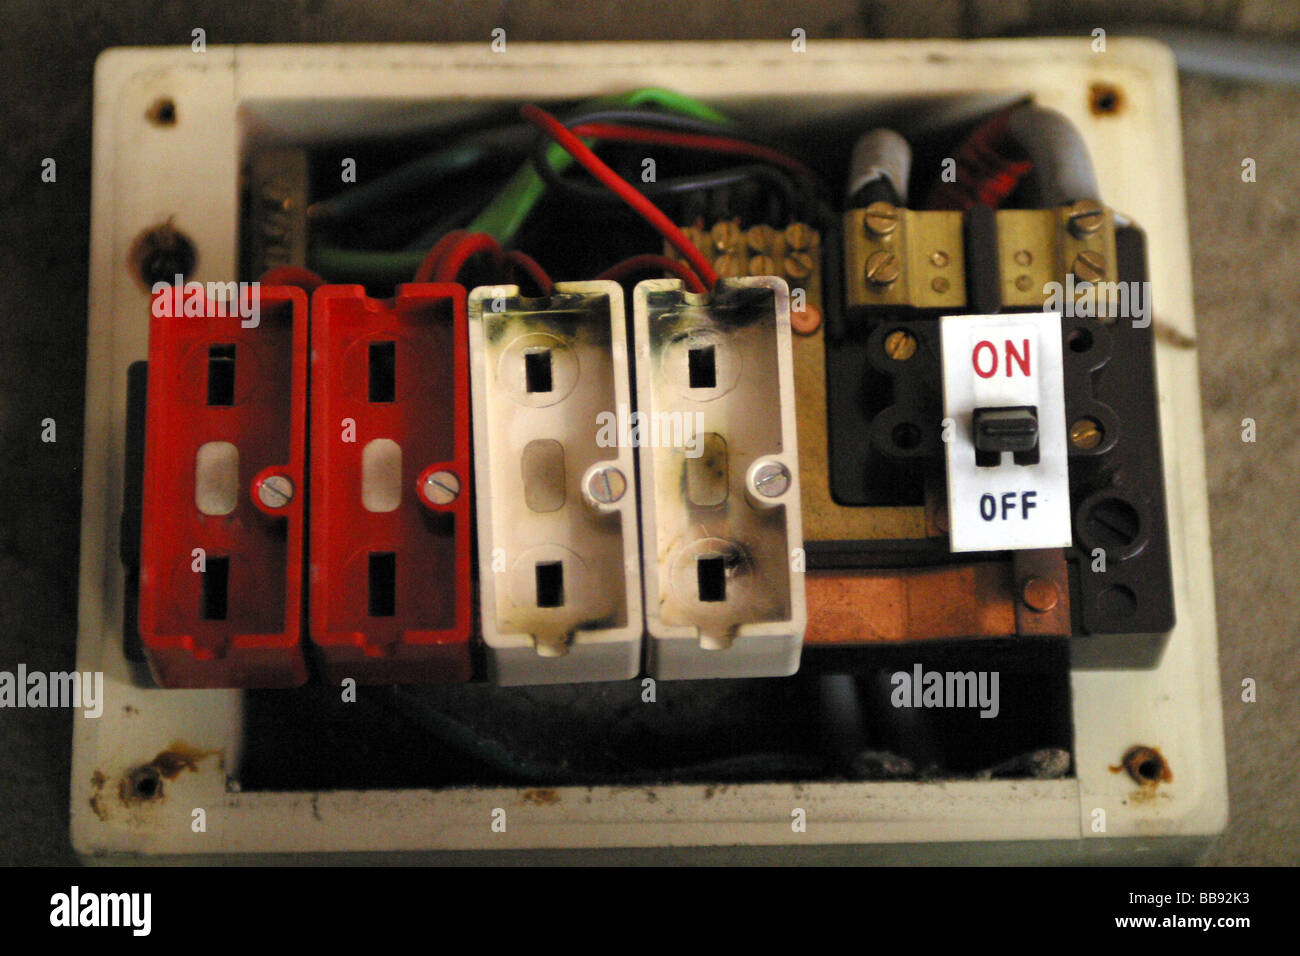 Old Fuses Fuse Box Stock Photos & Old Fuses Fuse Box Stock Images ...